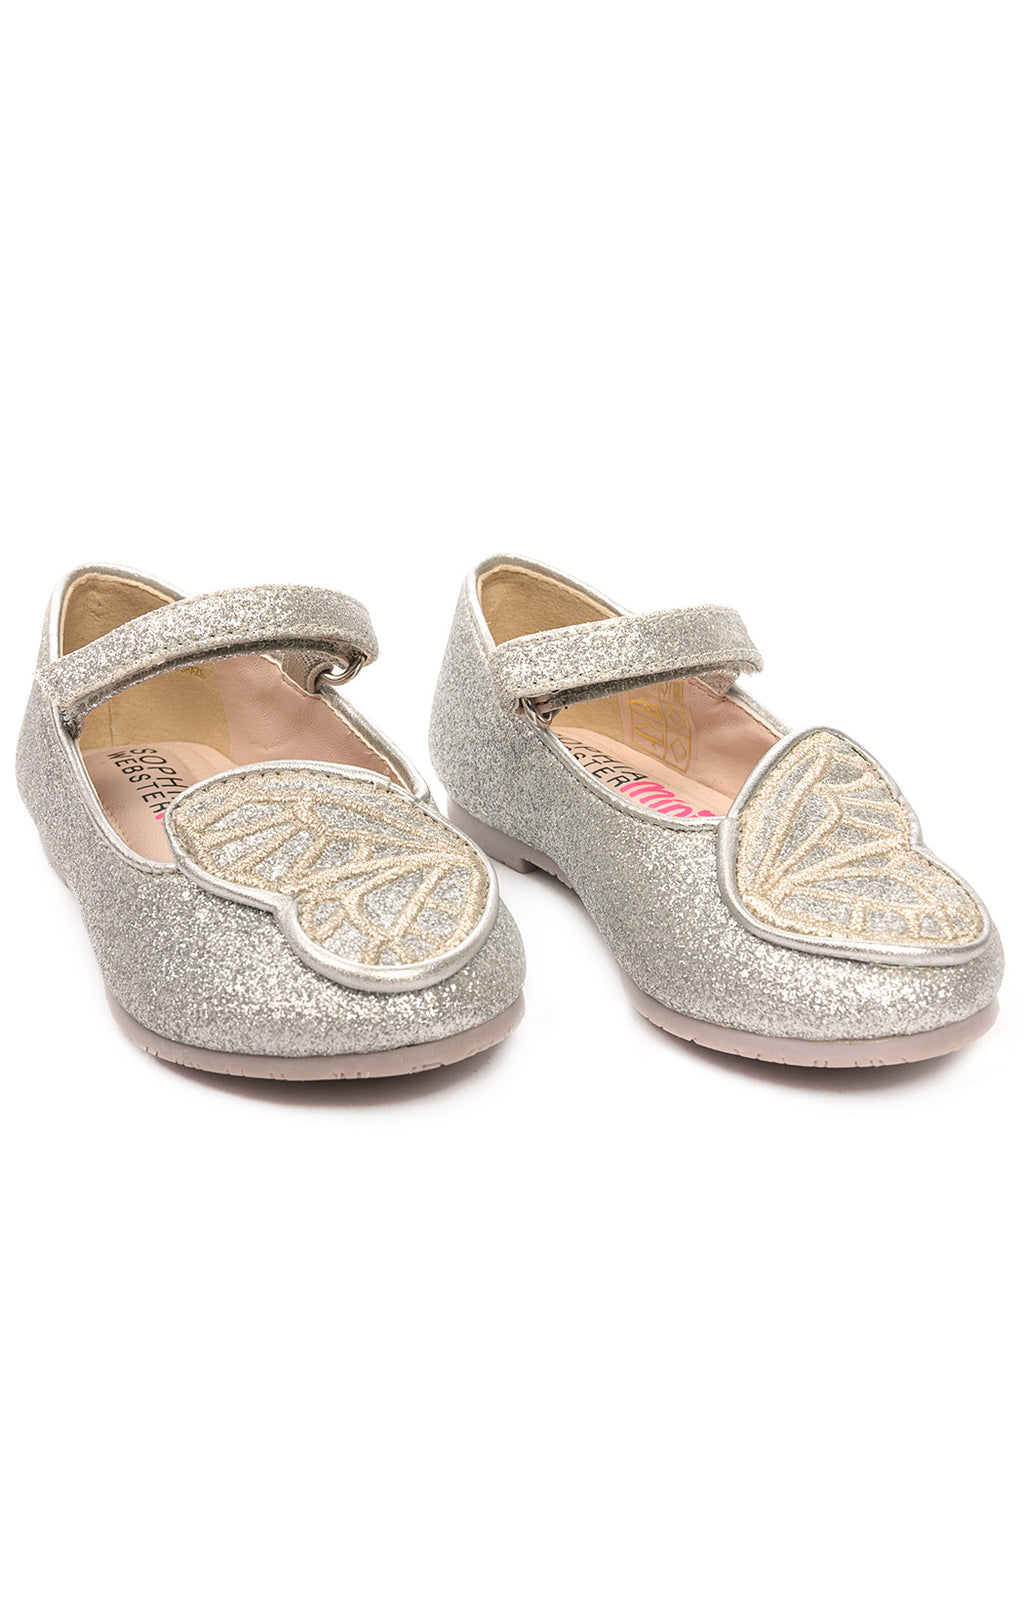 Front view of SOPHIA WEBSTER Shoes Size: 21 months